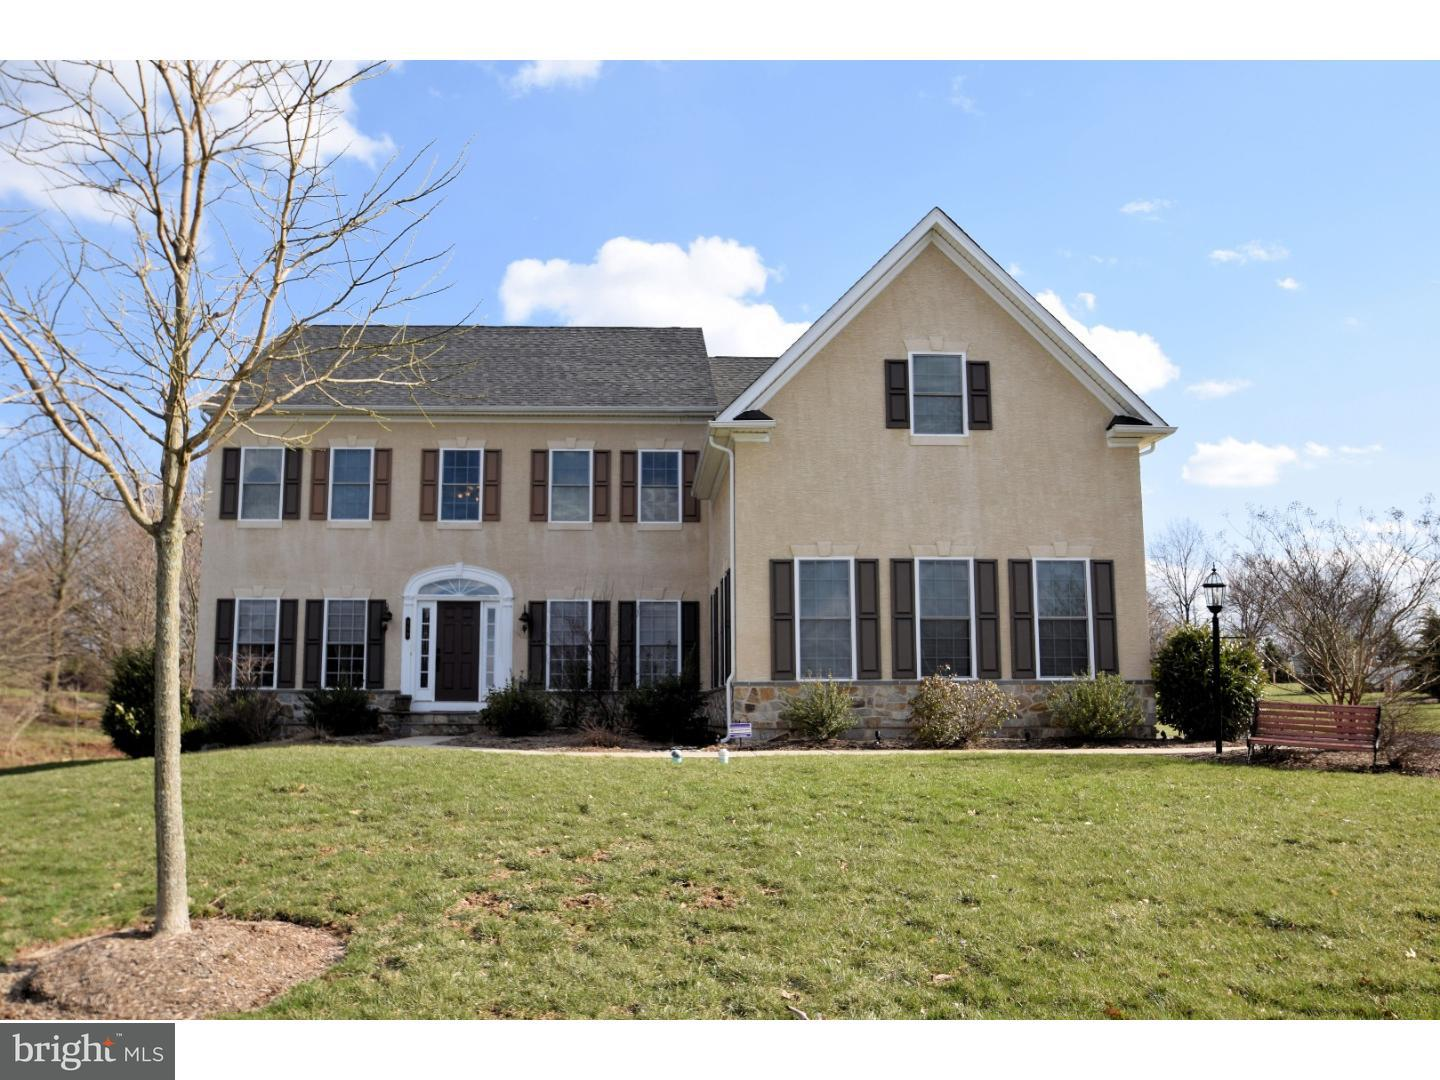 Single Family Home for Sale at 350 ALEXANDER Drive Telford, Pennsylvania 18969 United States